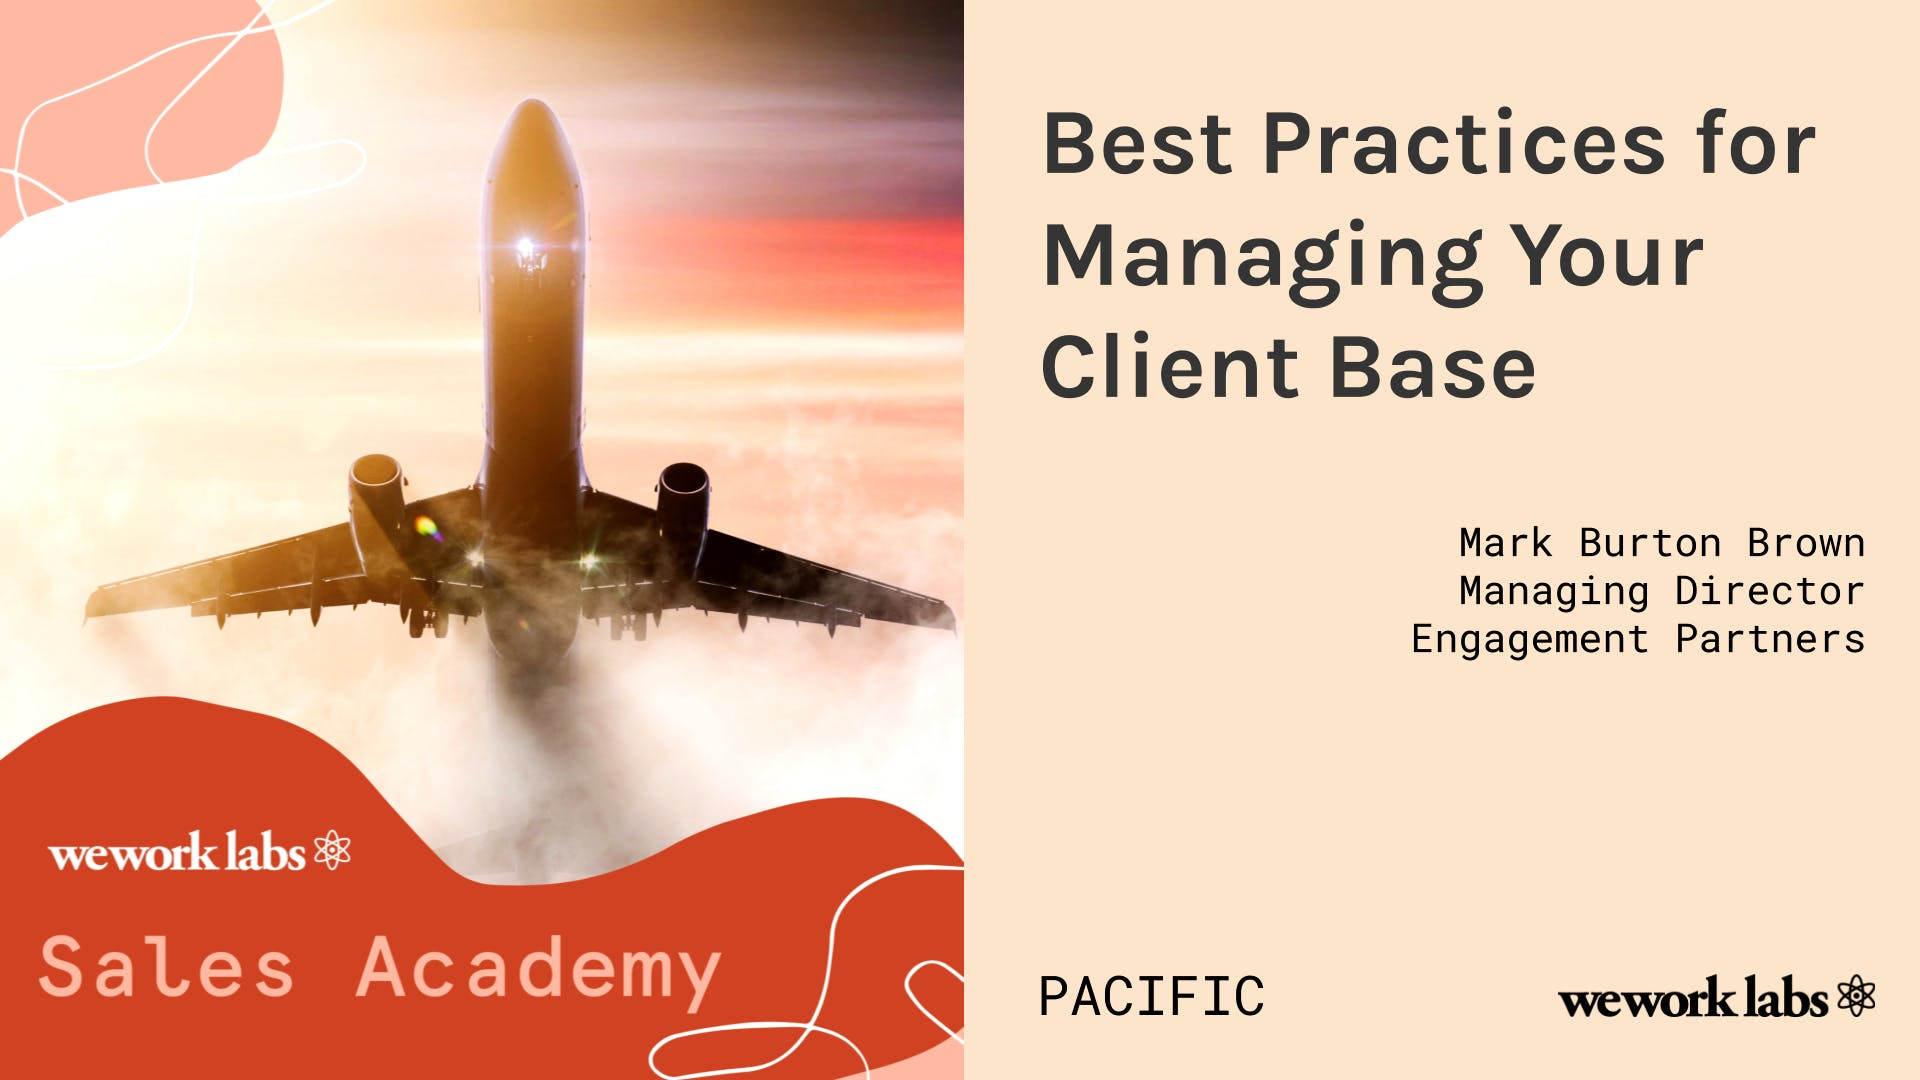 Sales Academy (Pacific): Best Practices for Managing Your Client Base